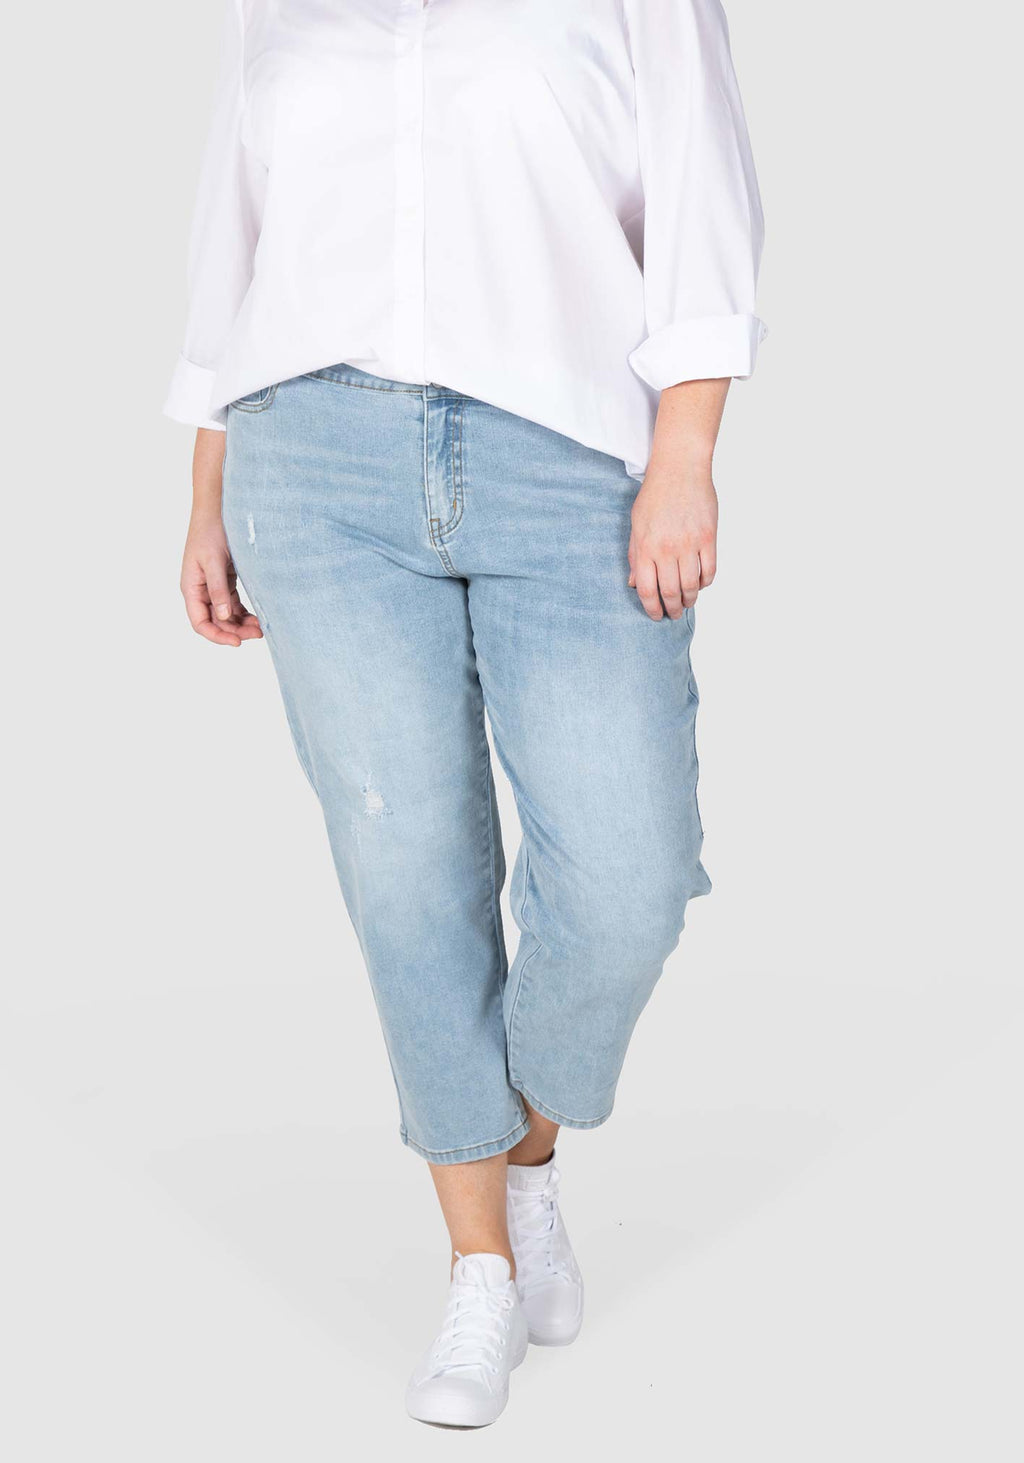 Jordyn Washed Out Stretch Jean  - Washed Indigo